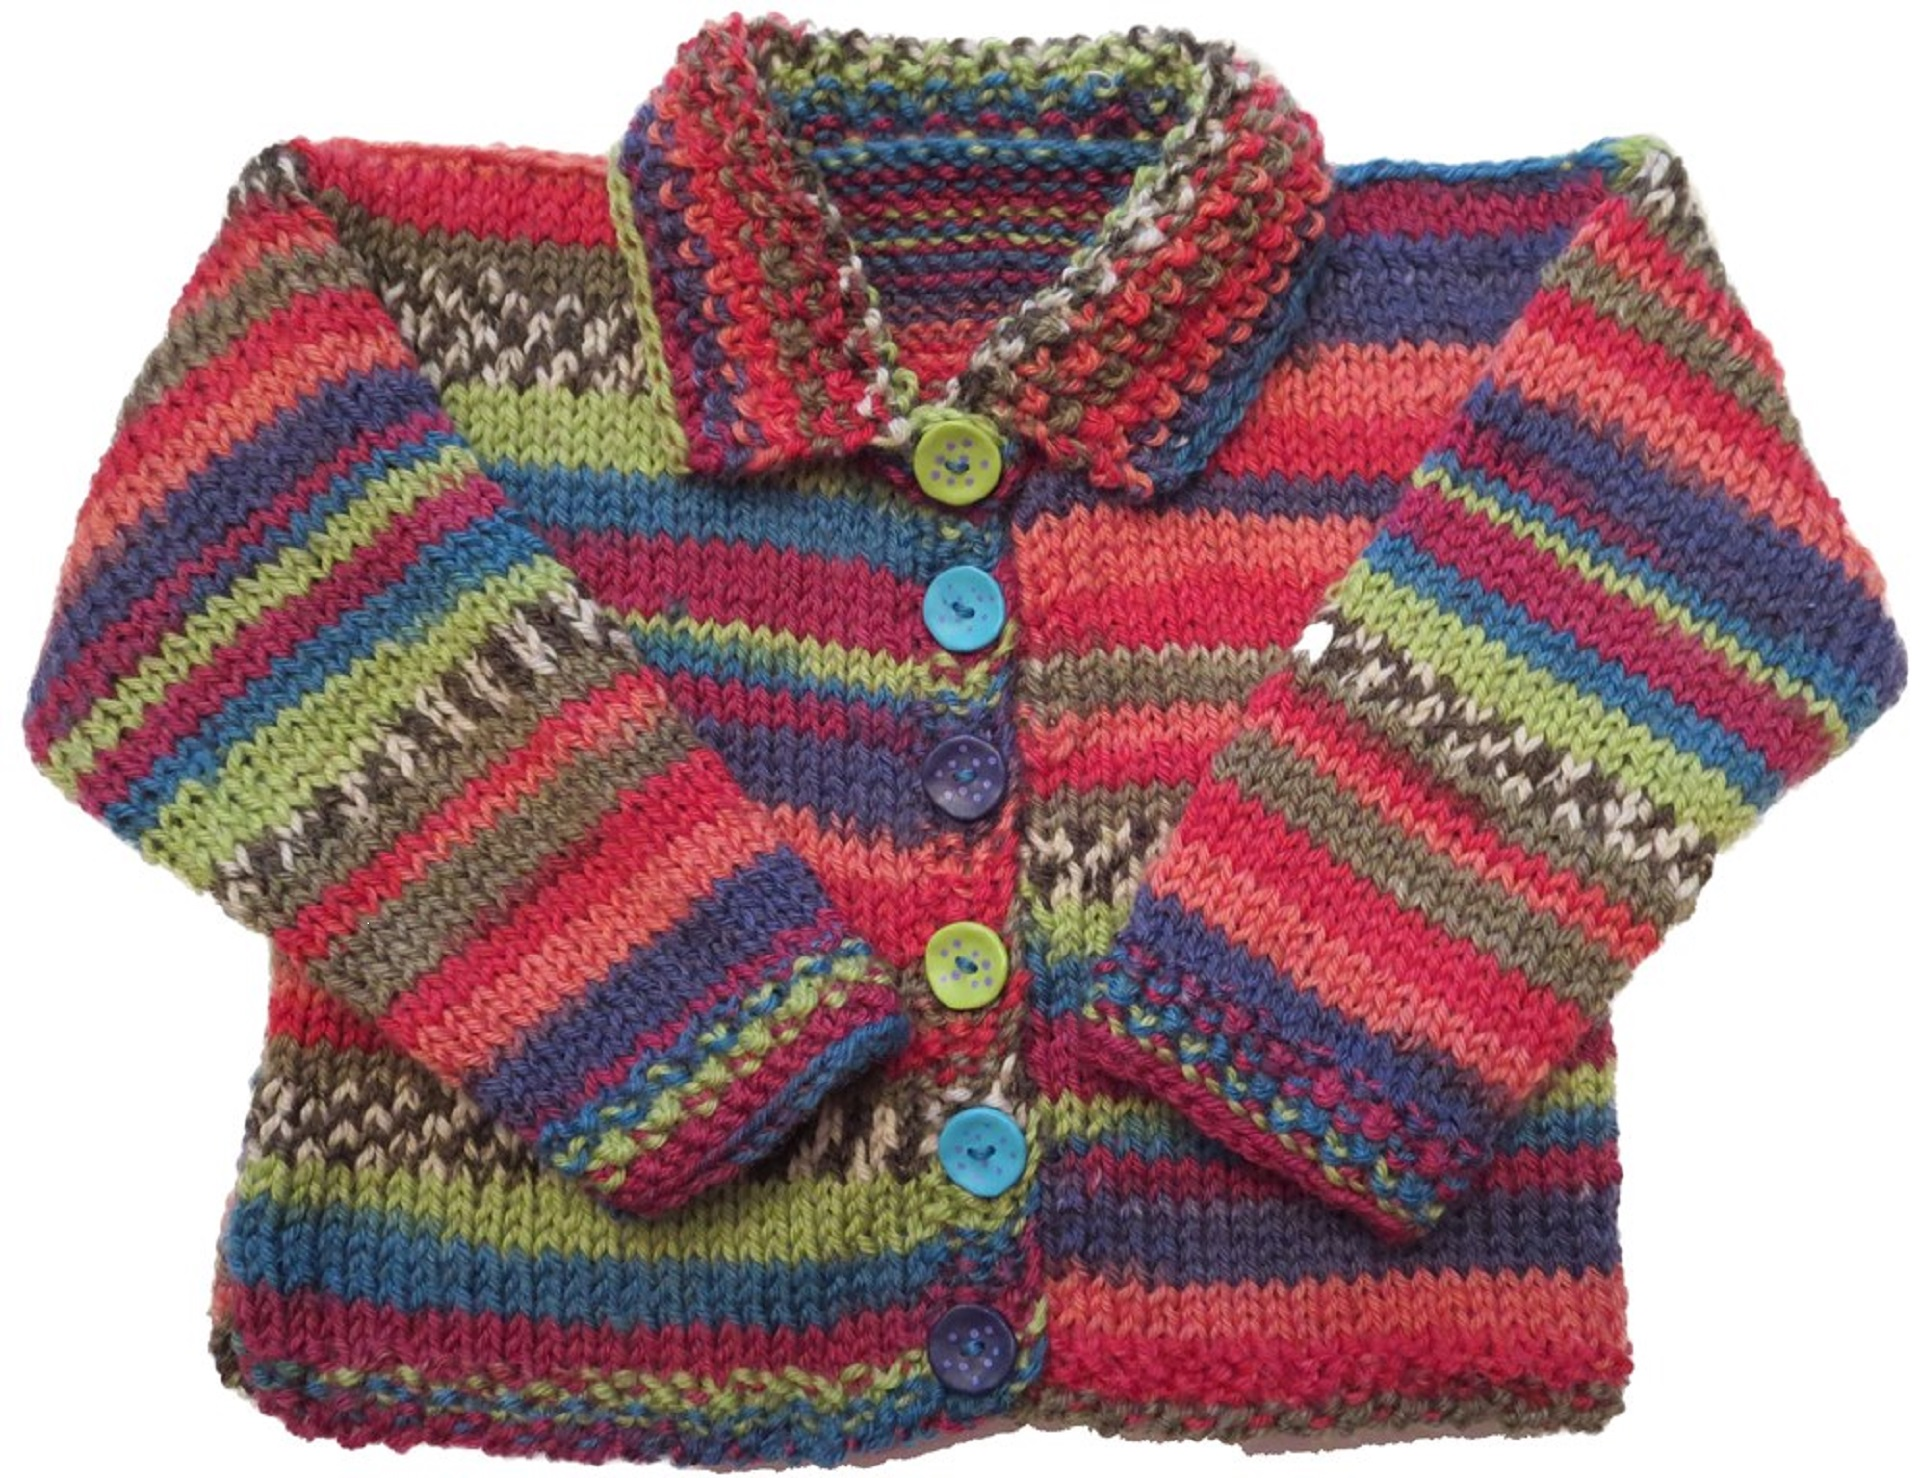 Baby Sweaters Marcie B - Hand Knitting and Patterns